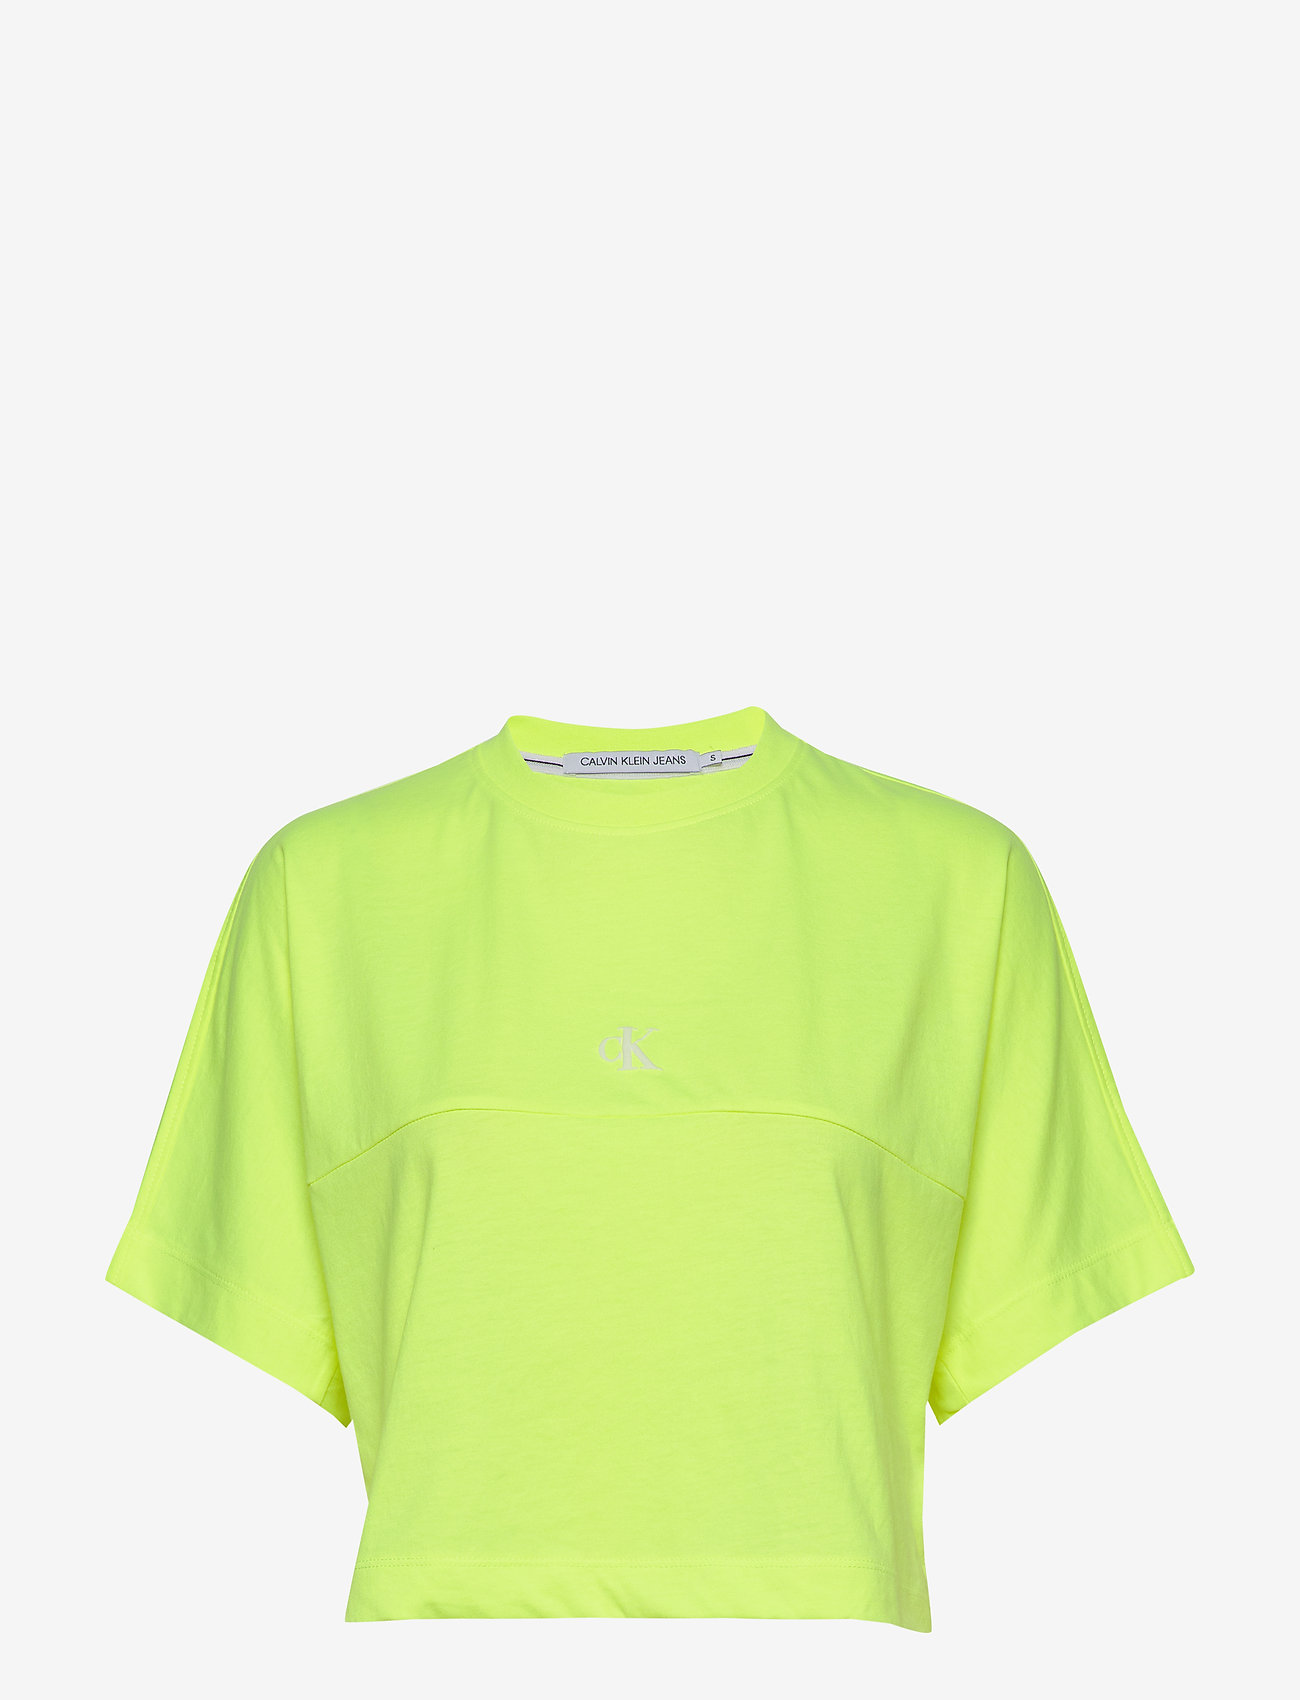 Calvin Klein Jeans - PUFF PRINT BACK LOGO T-SHIRT - crop tops - safety yellow - 0